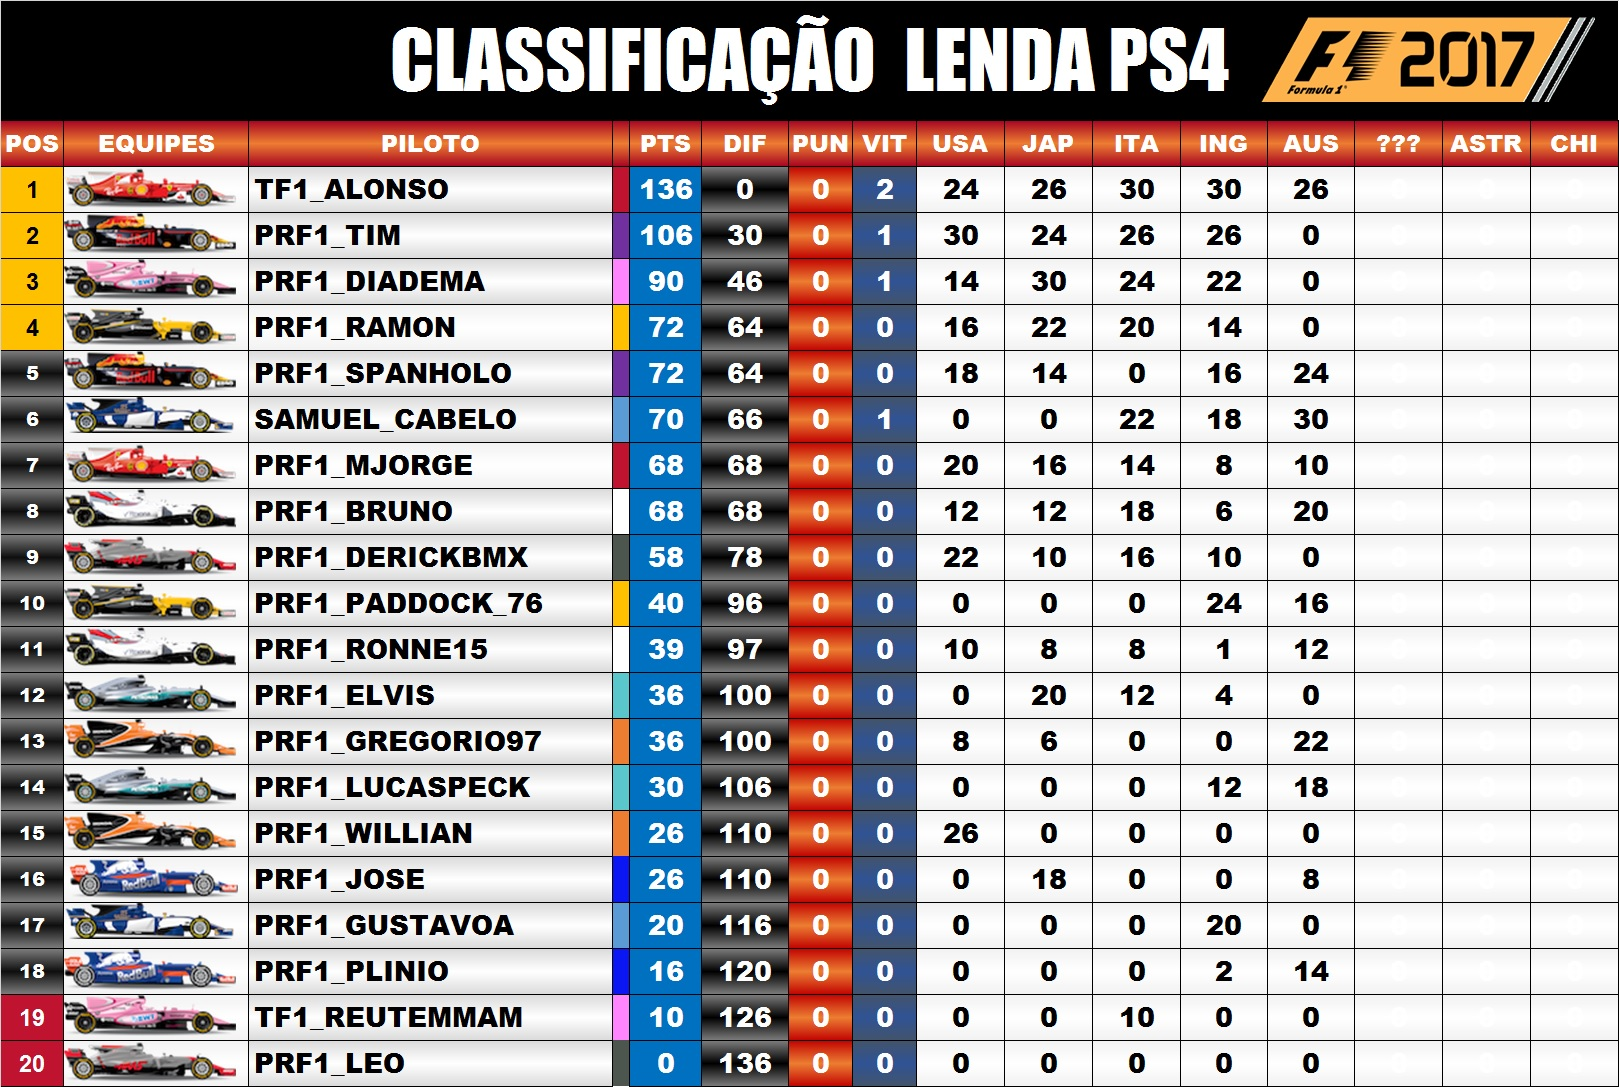 Classificação / F1 2017 PS4 - Lenda